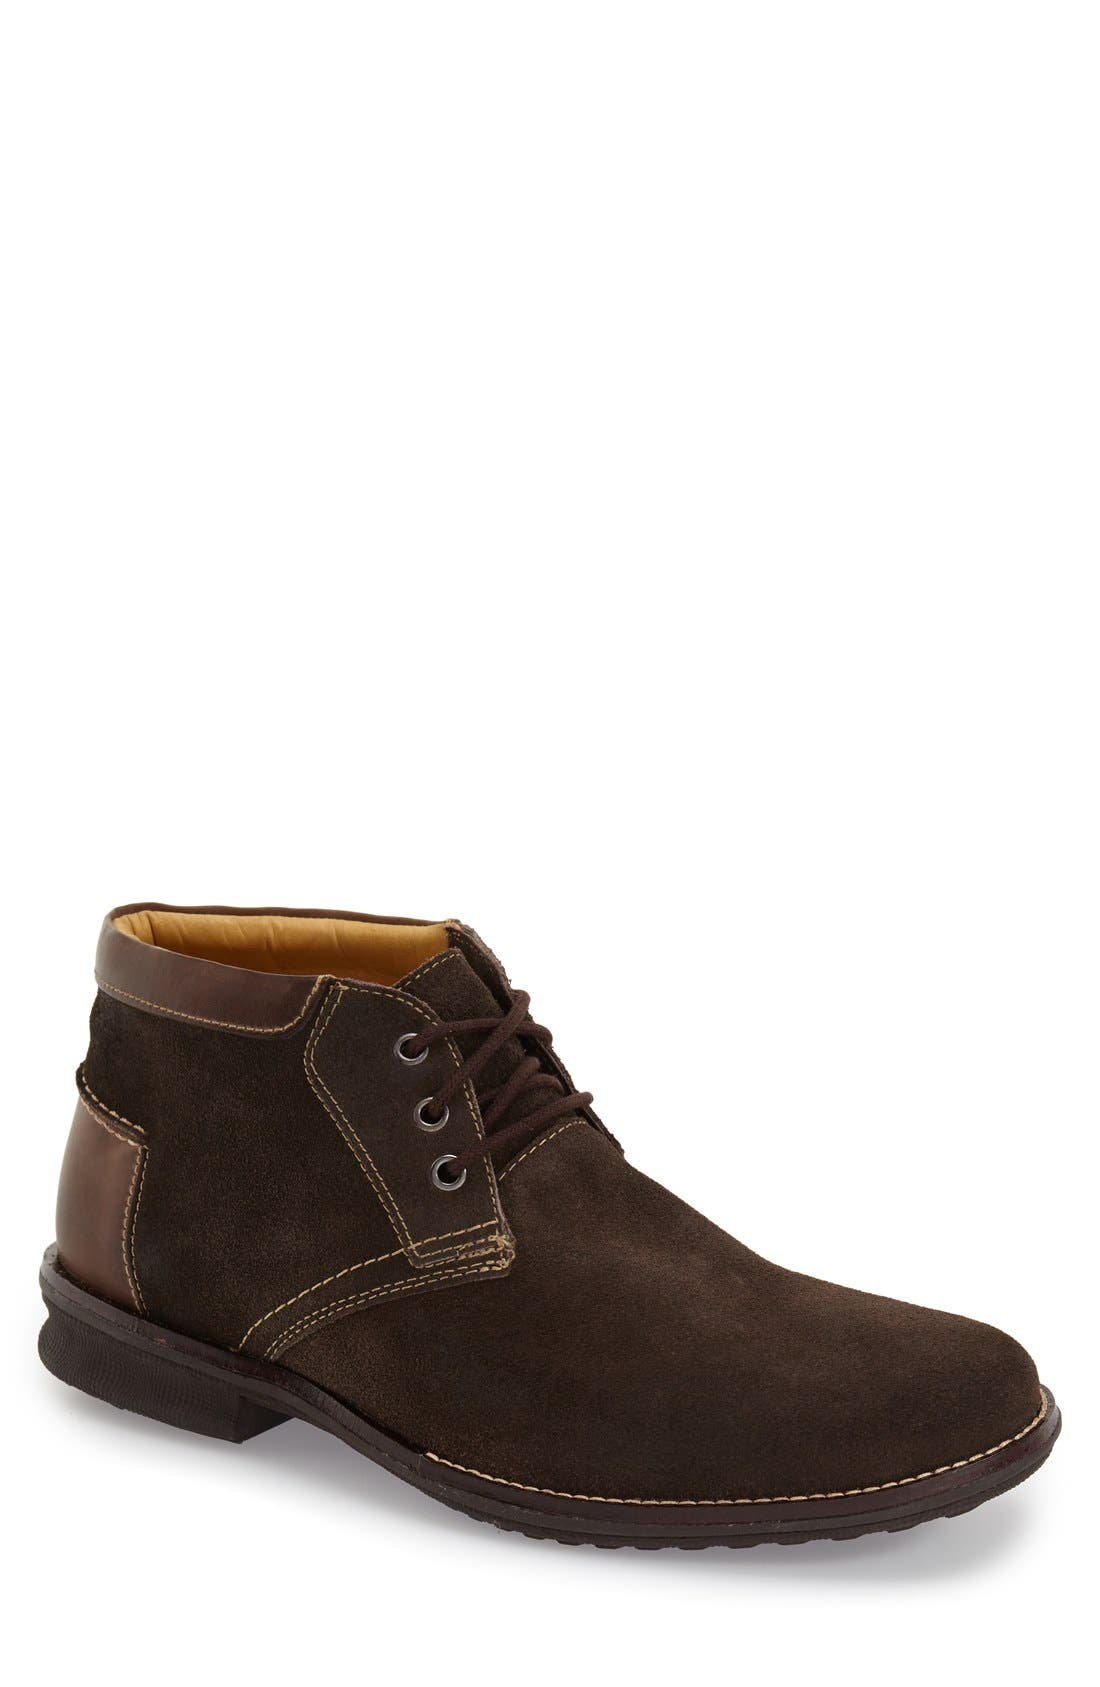 'Travis' Chukka Boot,                             Main thumbnail 1, color,                             200